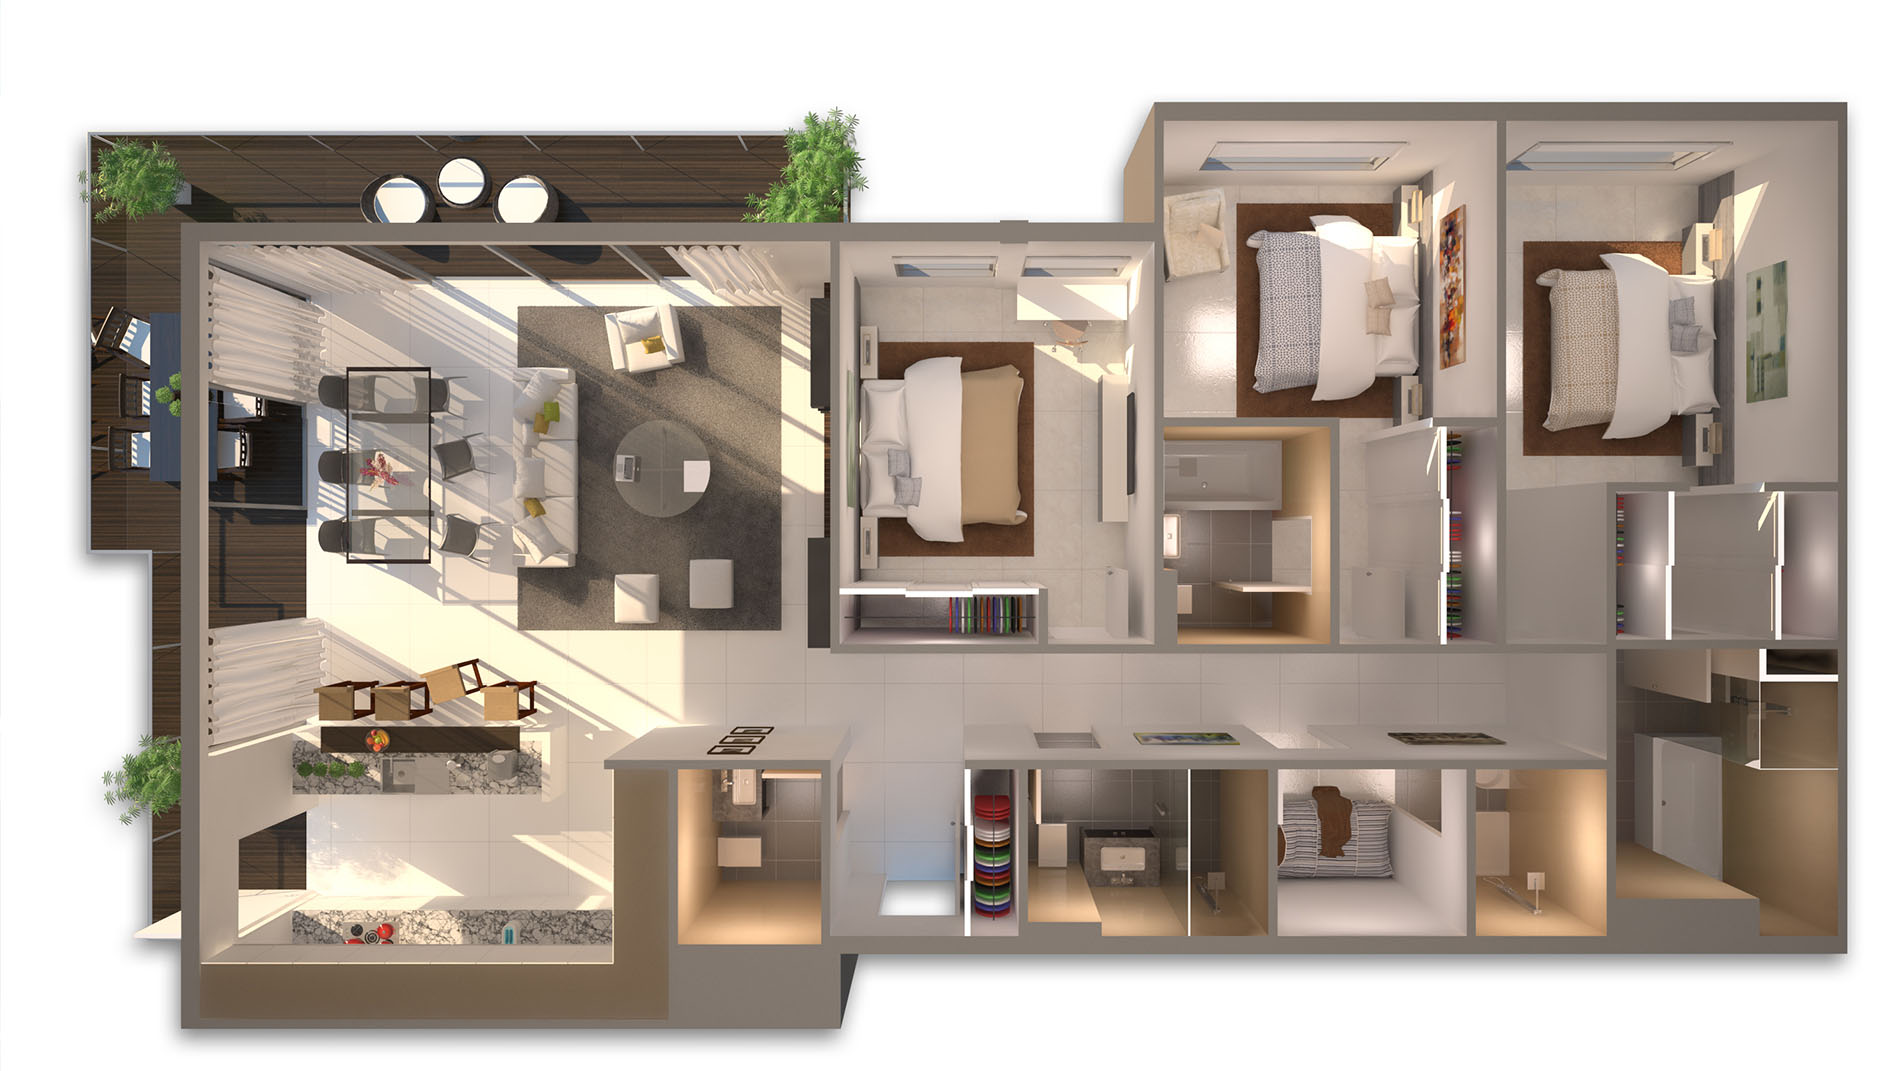 Top view perspective large furnished apartment colour coordination and design.